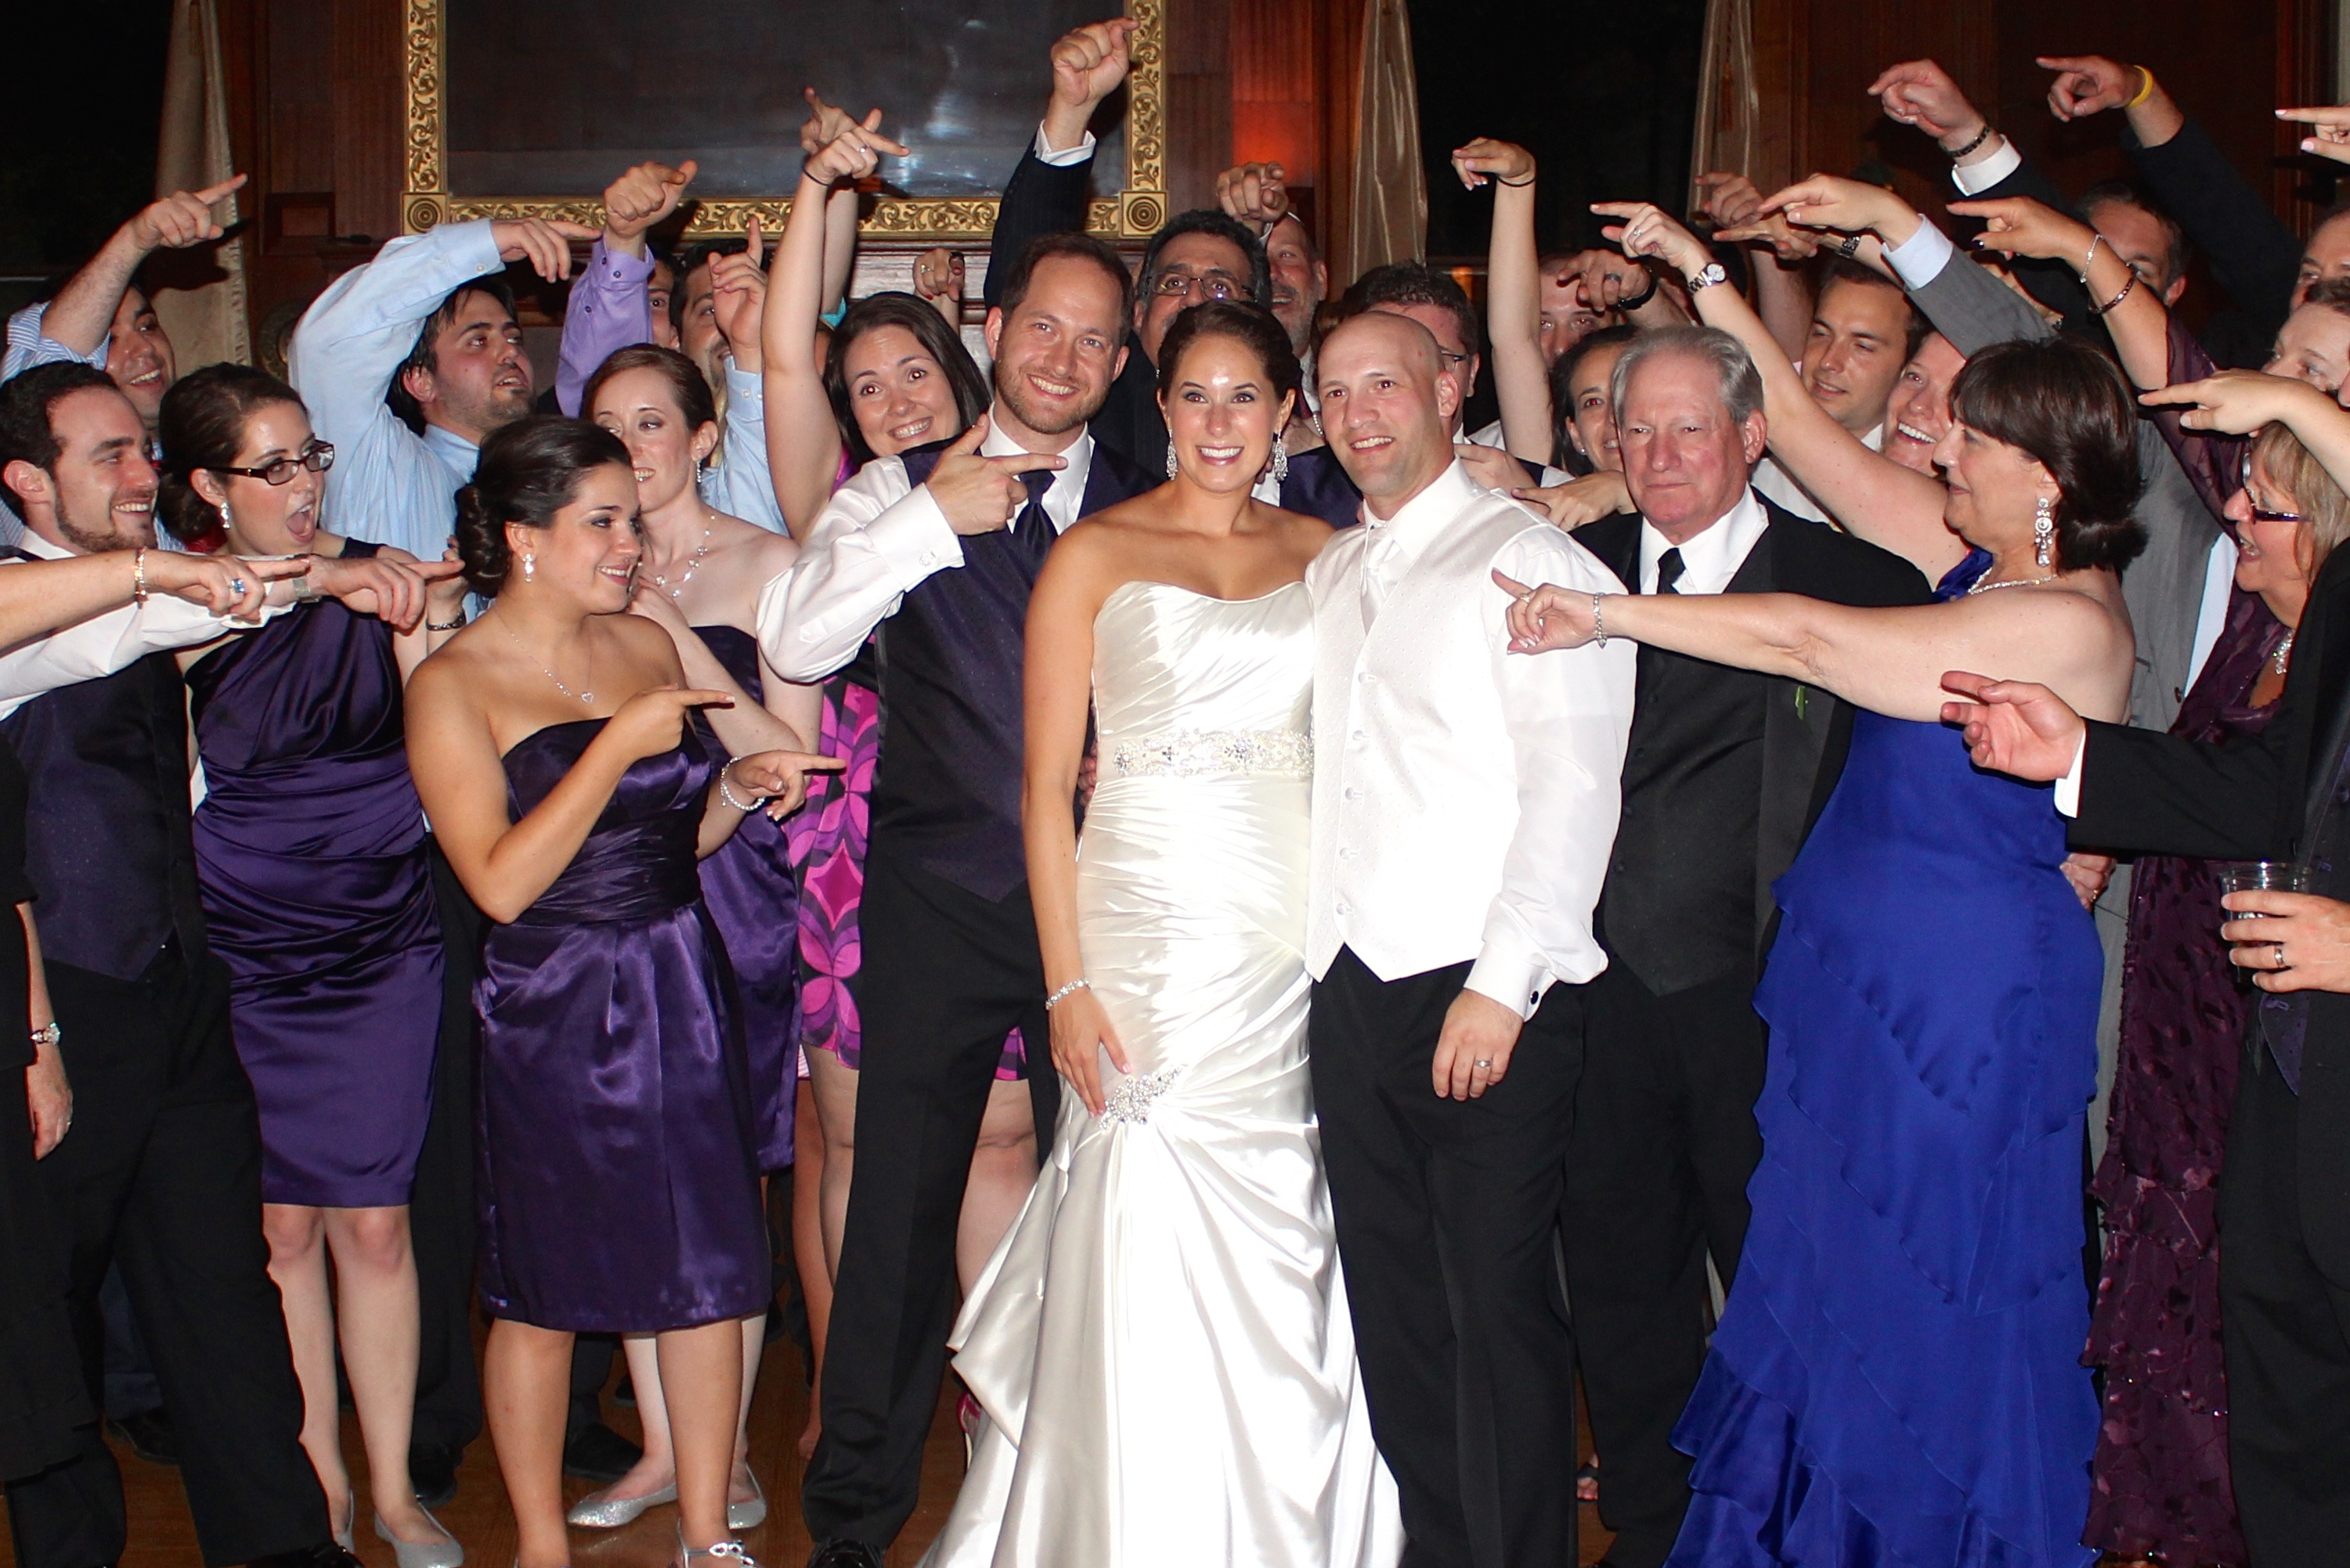 Wedding-bride-and-groom-with-friends-waving-goodbye-baltimore-wedding-dj